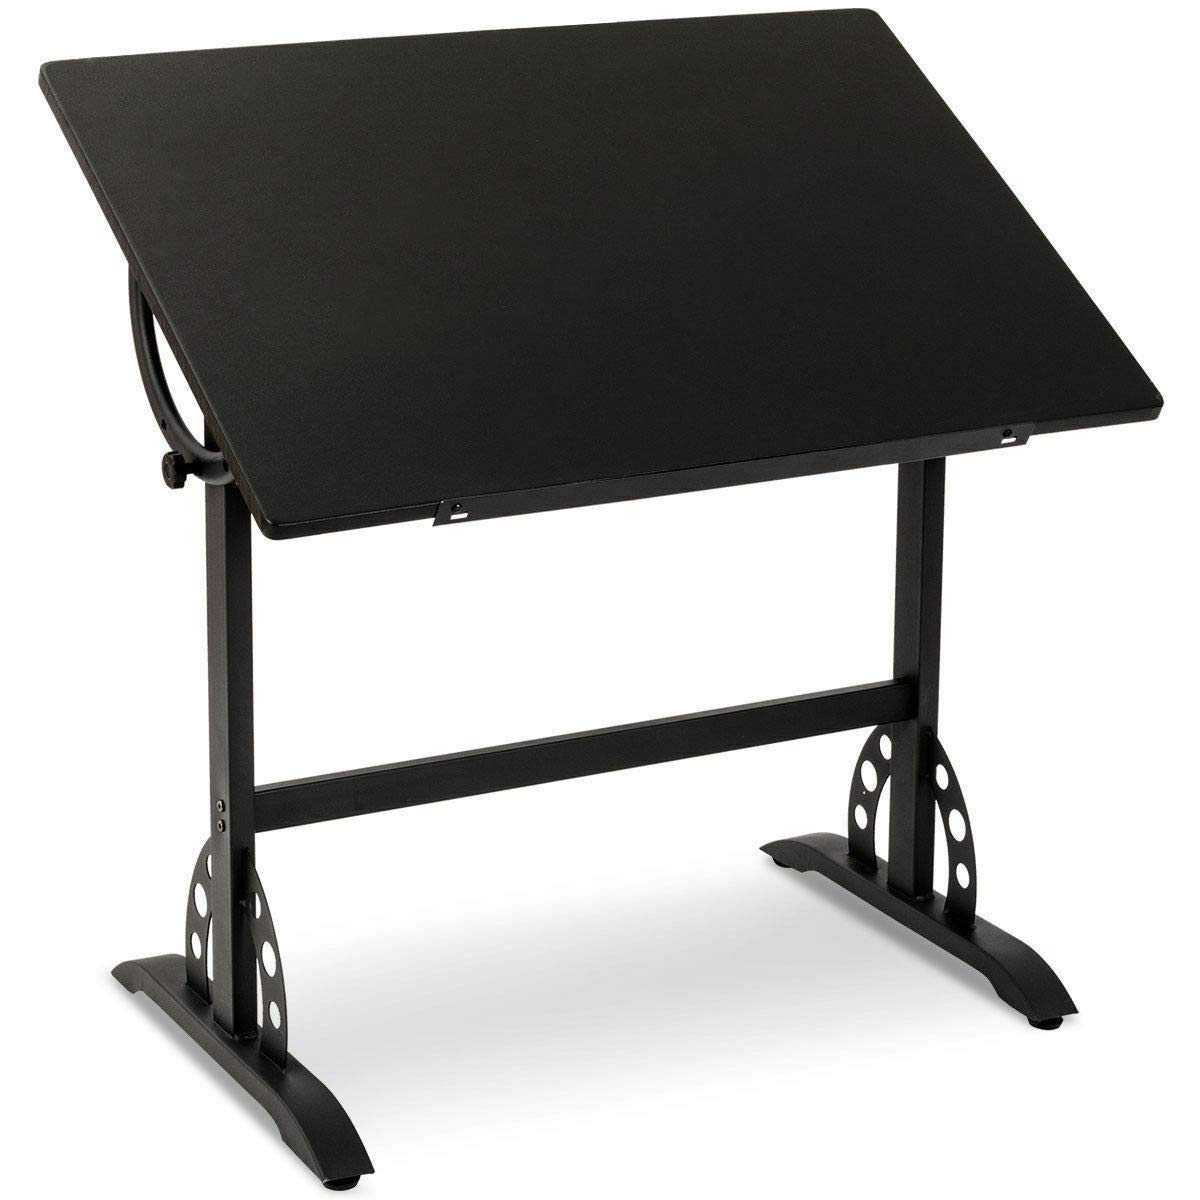 35.5Inch Adjustable Drawing Desk Office Drafting Table Art Craft Station Hobby with Metal Frame Black with Ebook